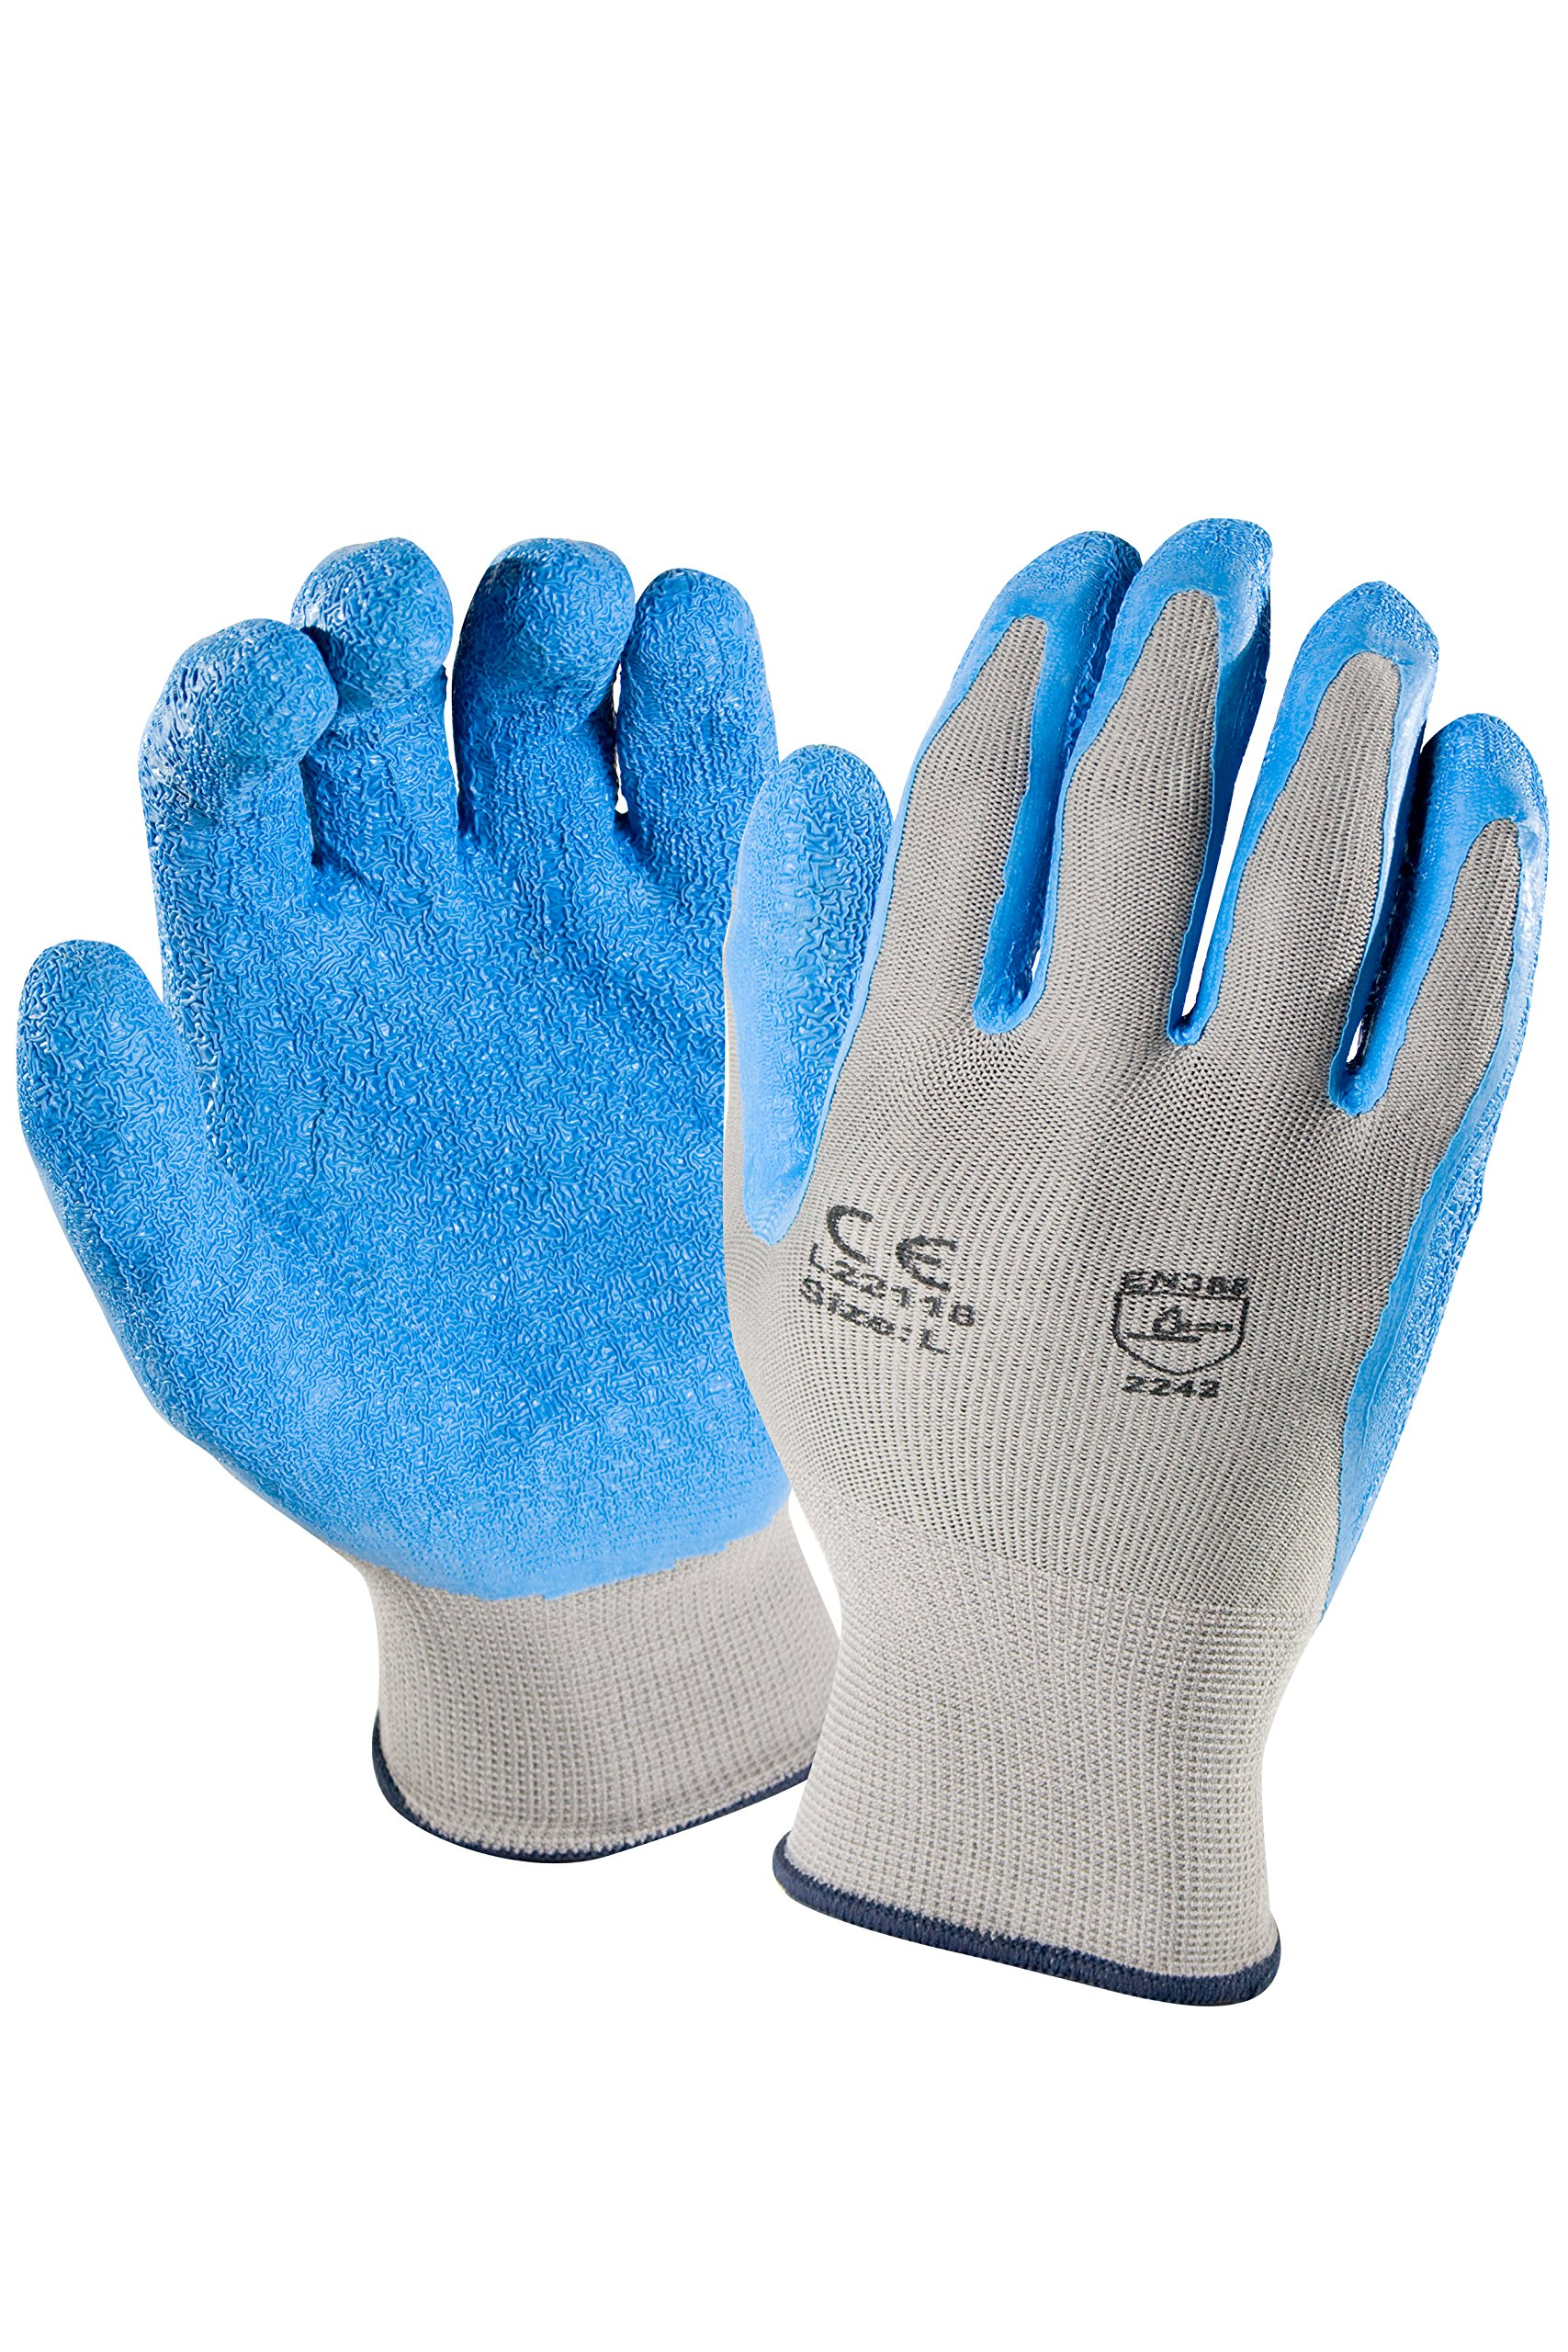 Azusa Safety L22118 13 gauge Knit Nylon Work Safety Gloves, Latex Coated Textured Crinkle Finish X-Large 10'', Blue/Gray (Pack of 12 pairs) by Azusa Safety